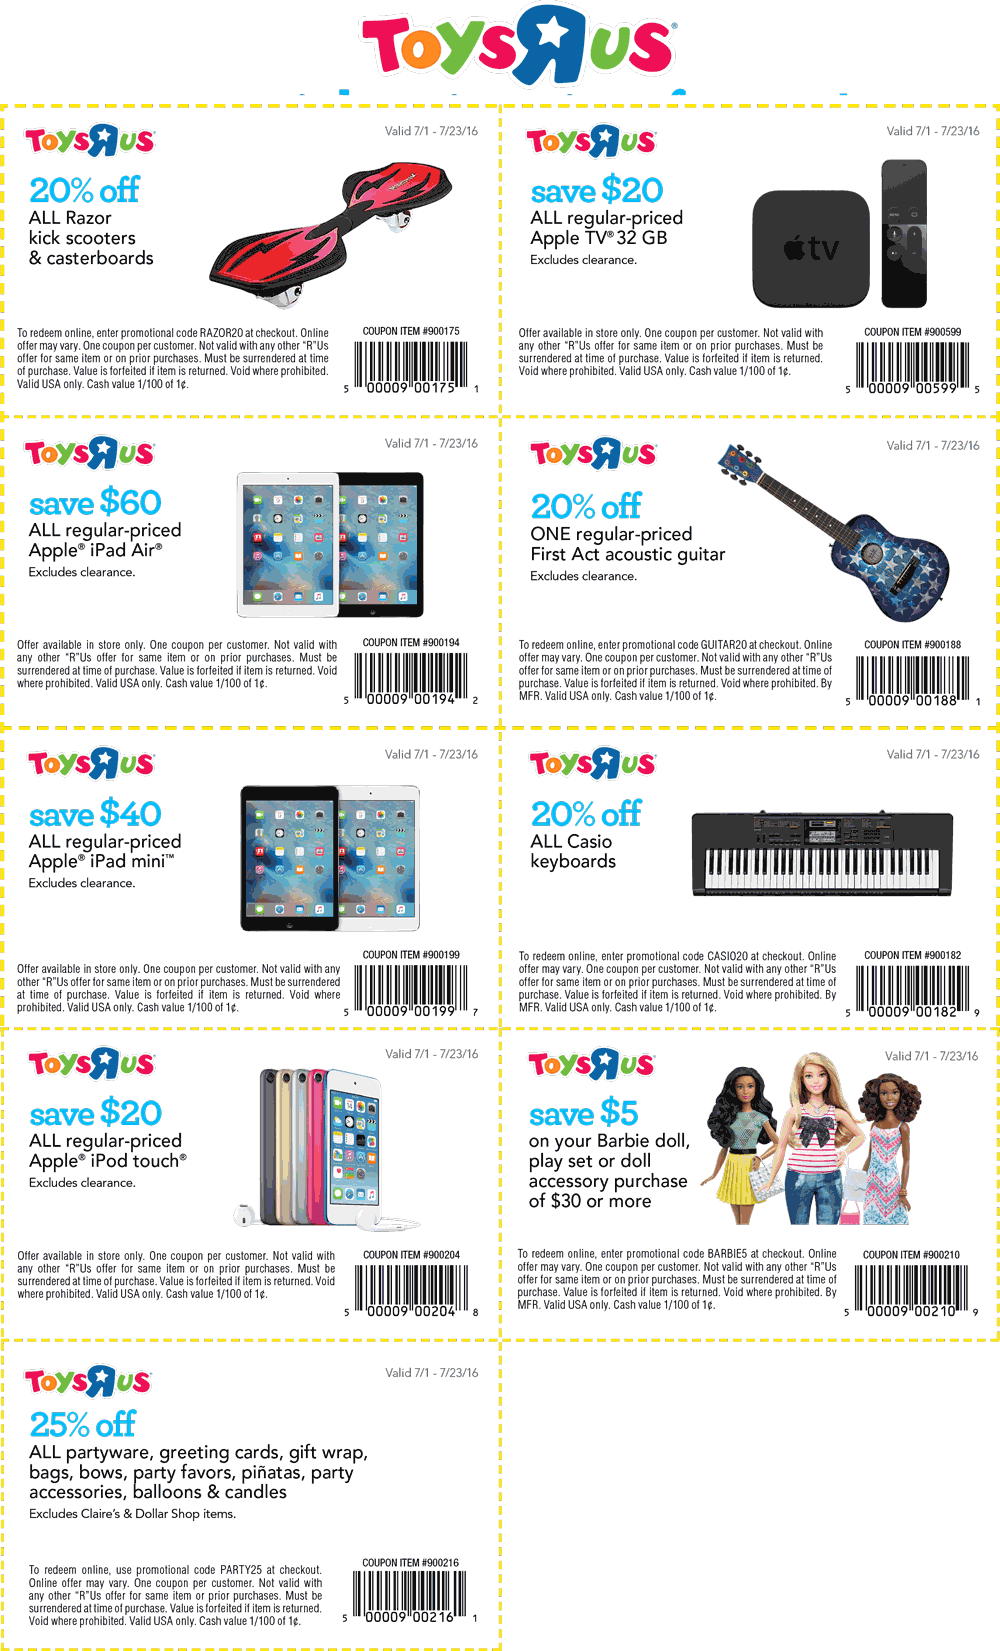 ToysRUs.com Promo Coupon Various coupons for Toys R Us